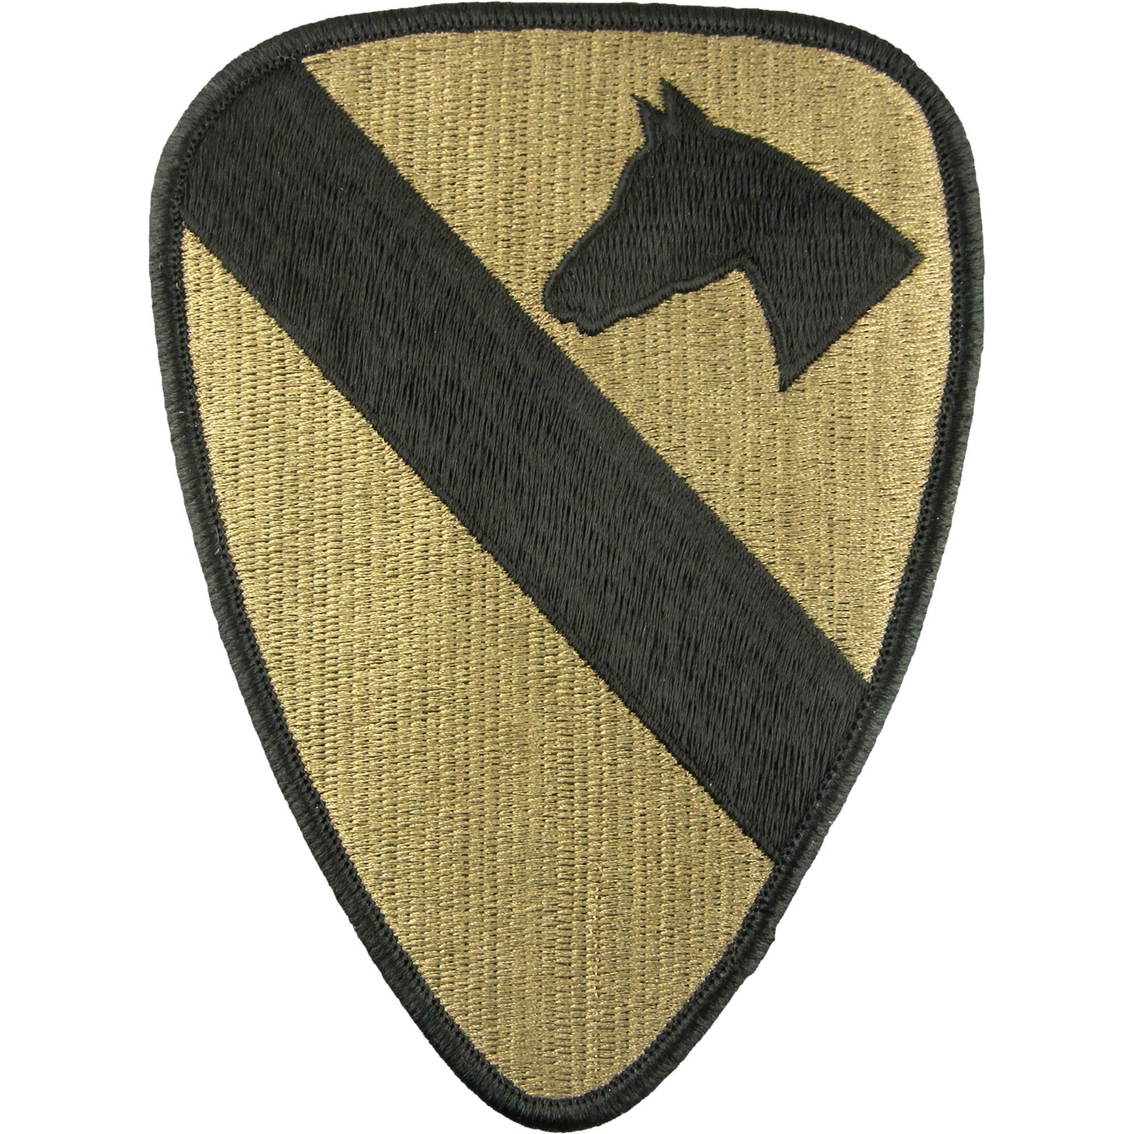 Army Unit Patch 1st Cavalry Division (ocp)  8fce4493169